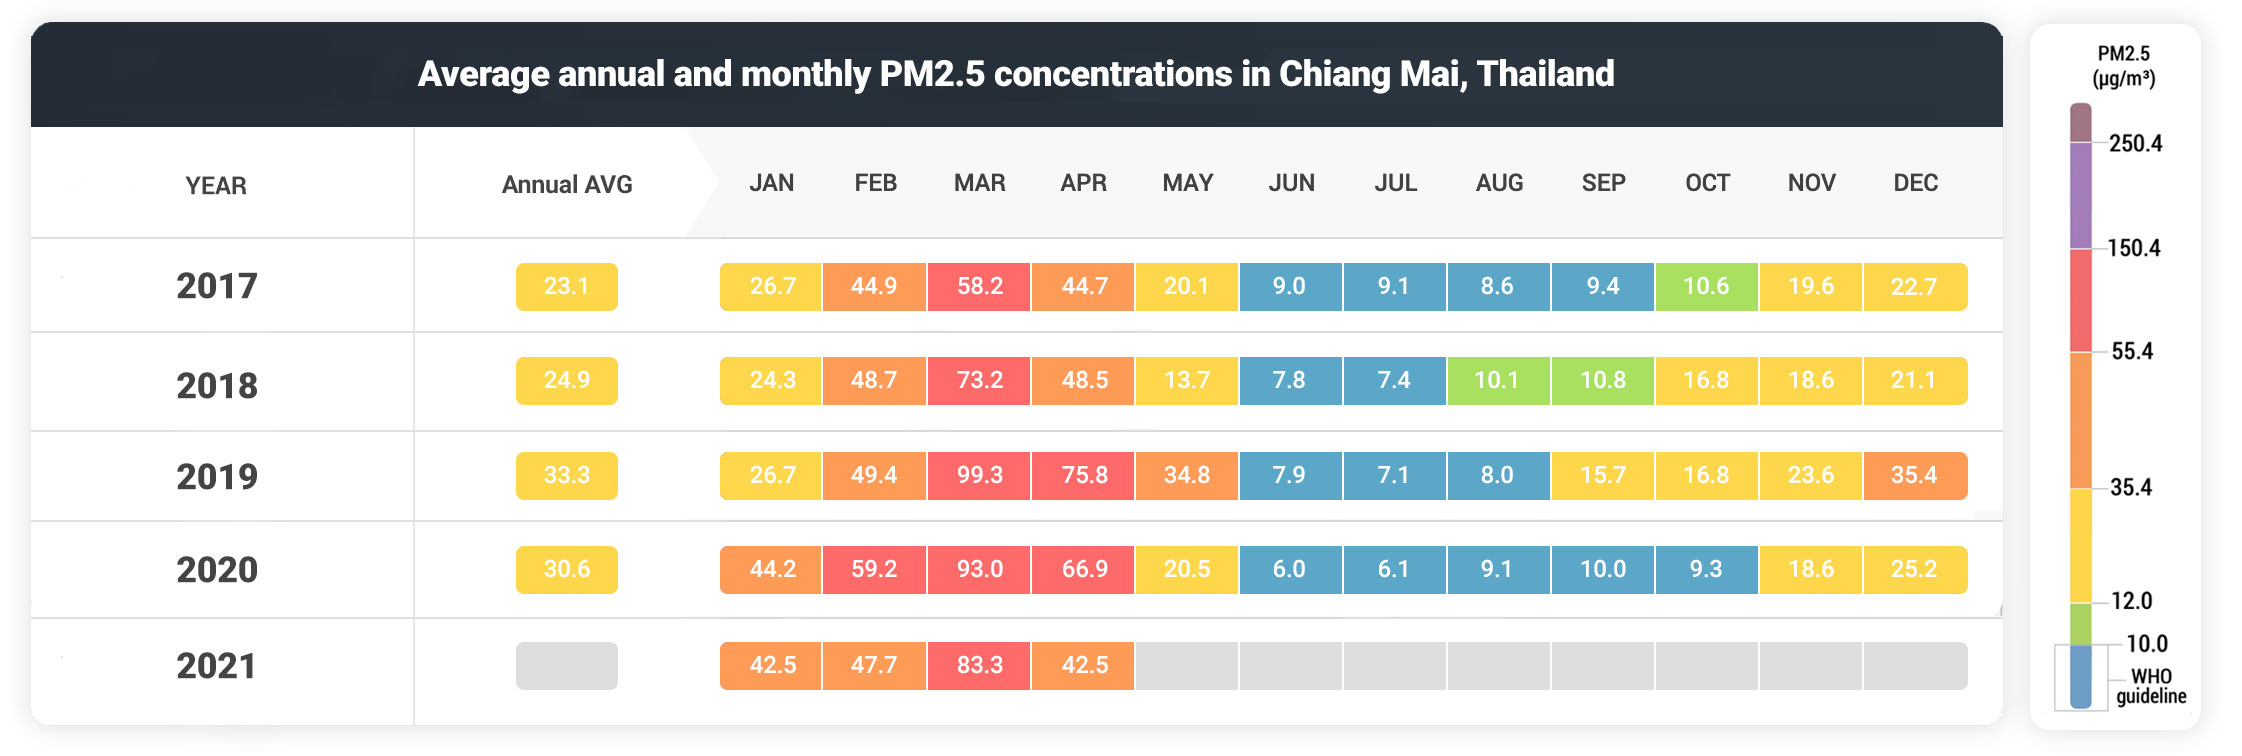 Chiang Mai monthly AQI averages